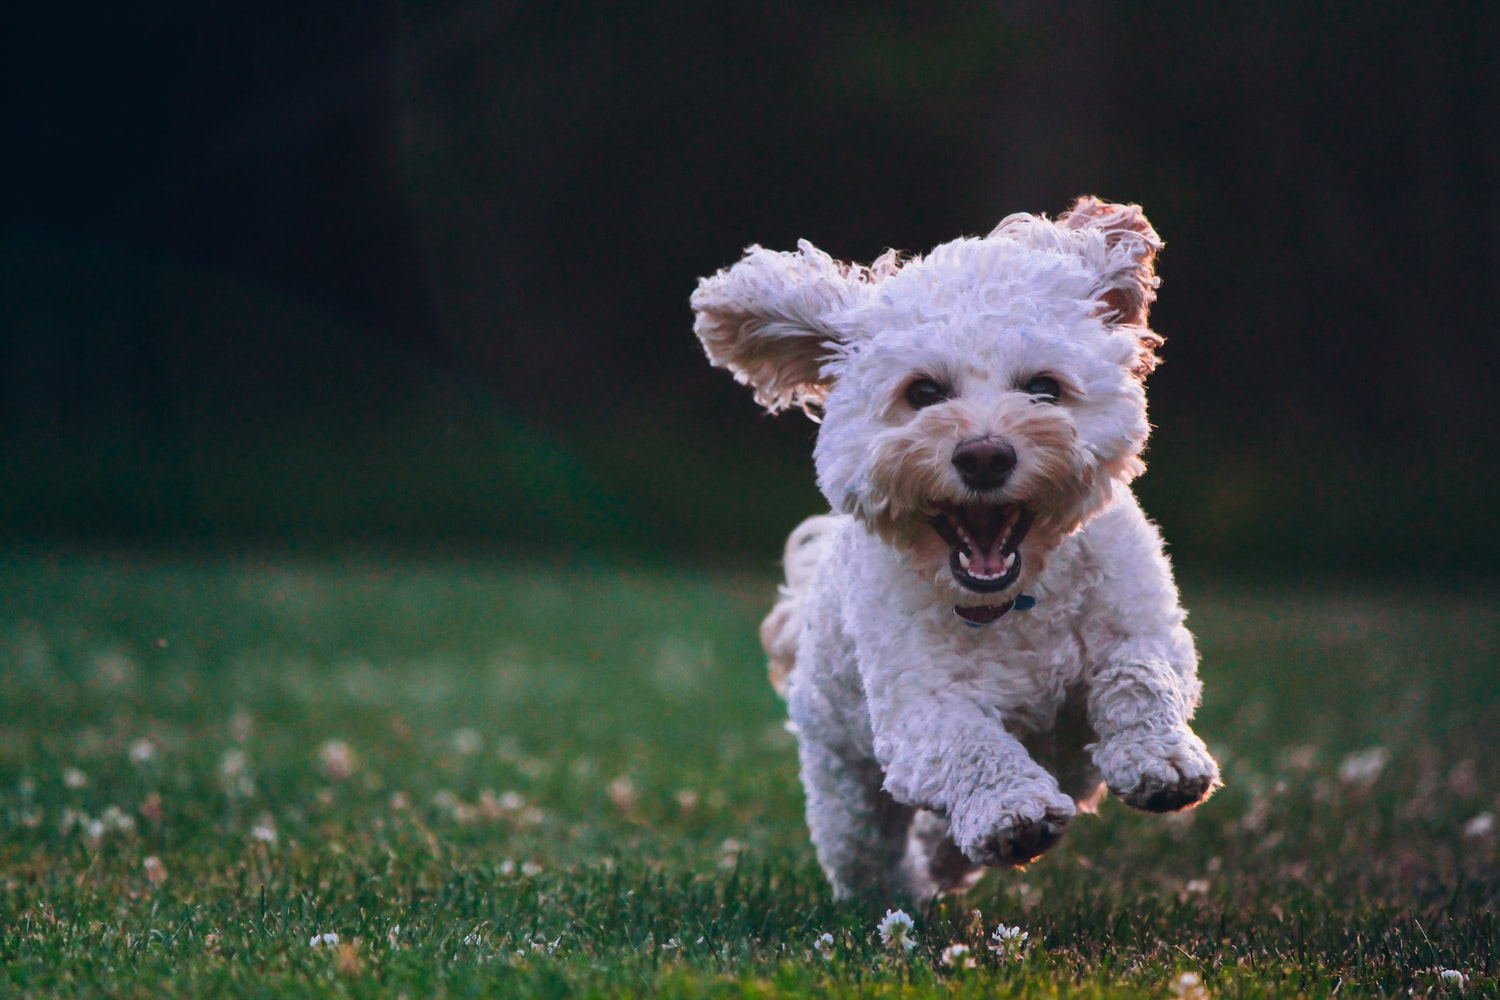 5 ways to make sure your dog lives a long, healthy, happy life